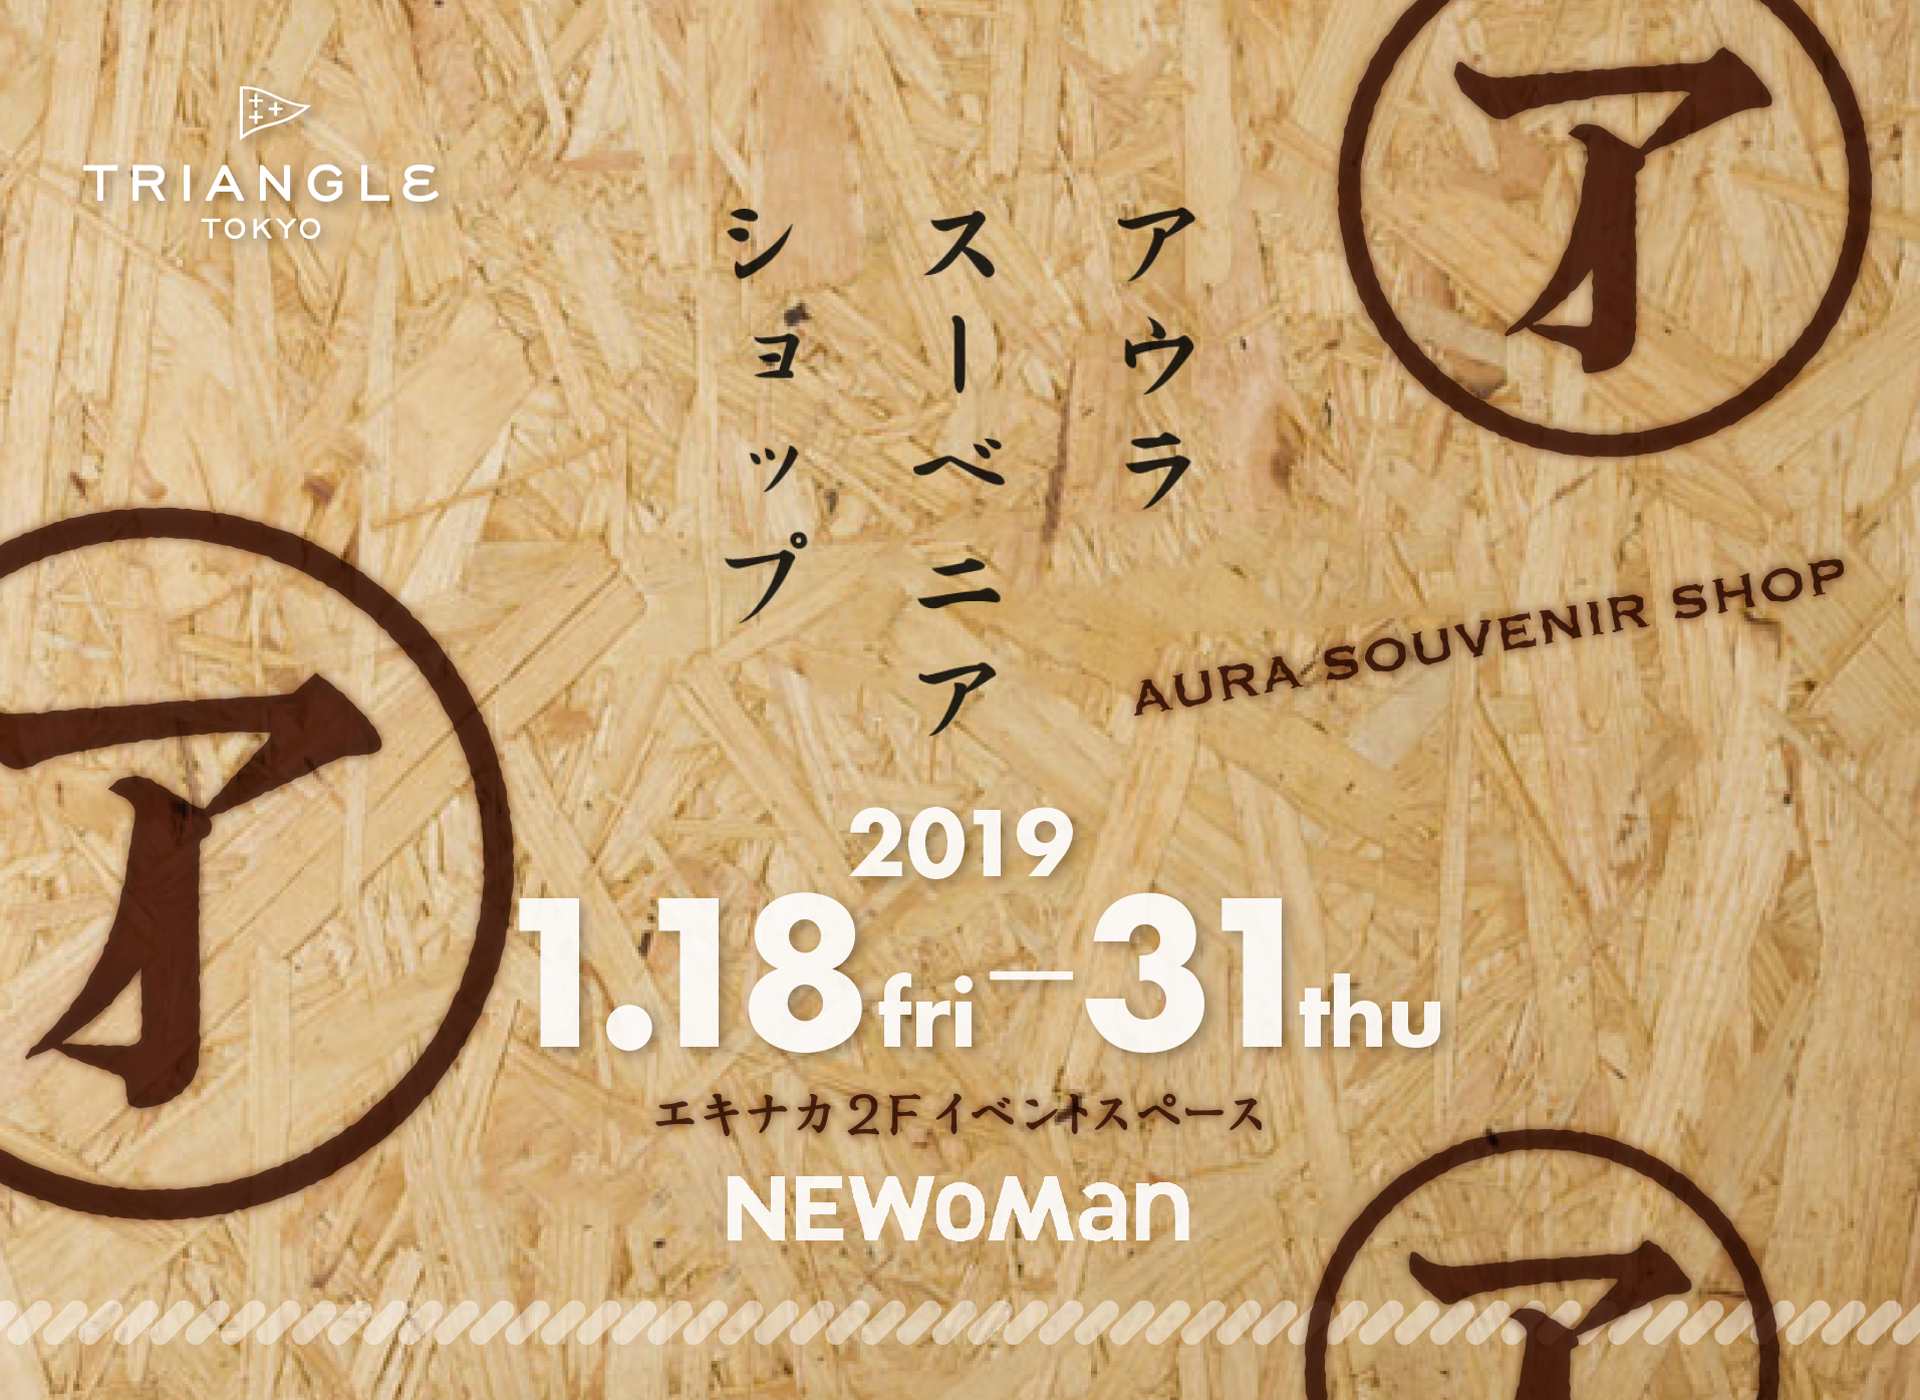 AURA SOUVENIR SHOP 2019 Banner which has logo and pop-up event informations on it